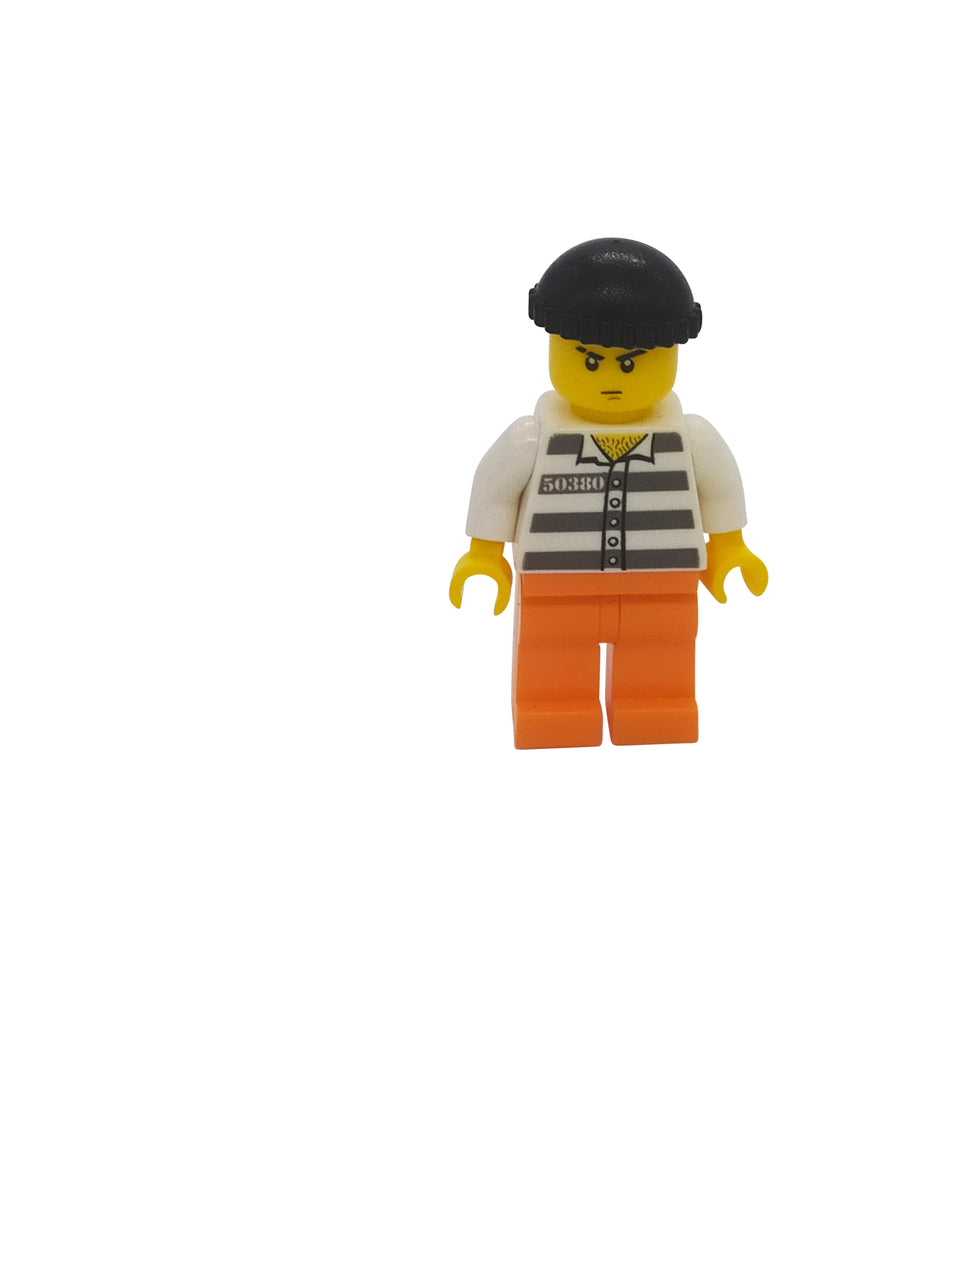 Sneaky figure with orange shorts and black hat - Lego